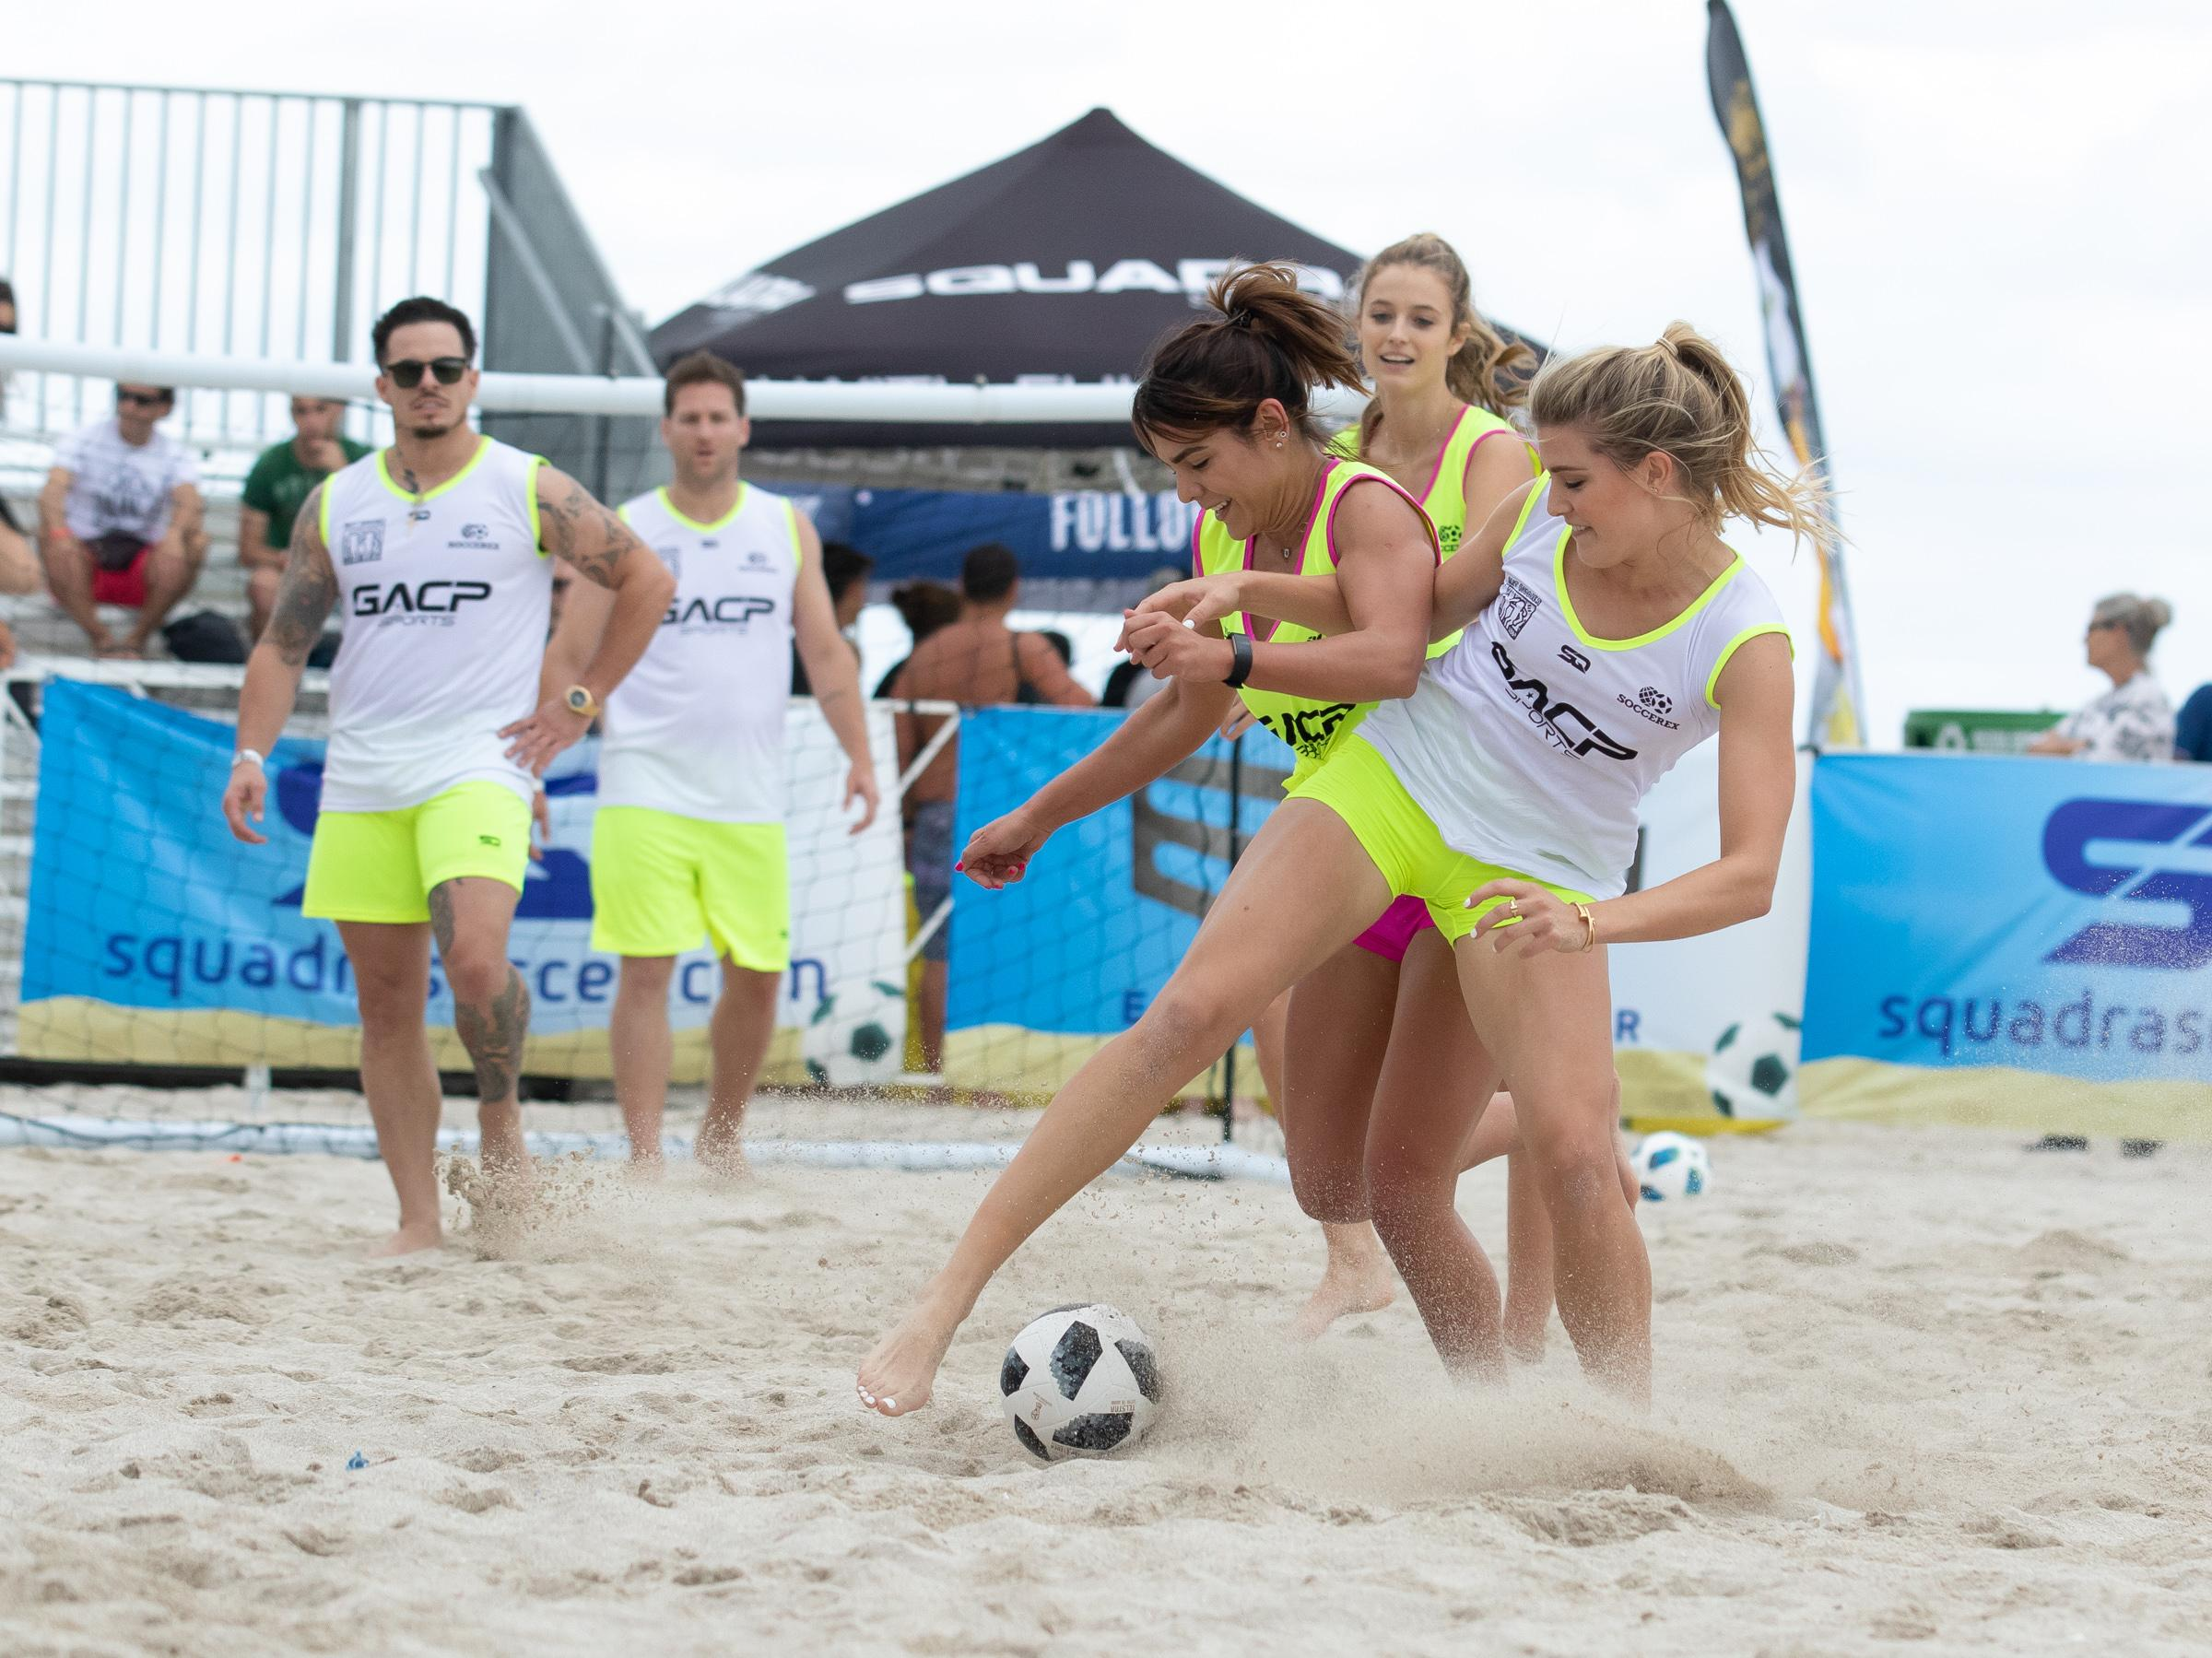 The charity match was organised by the Sports Illustrated Swimsuit edition